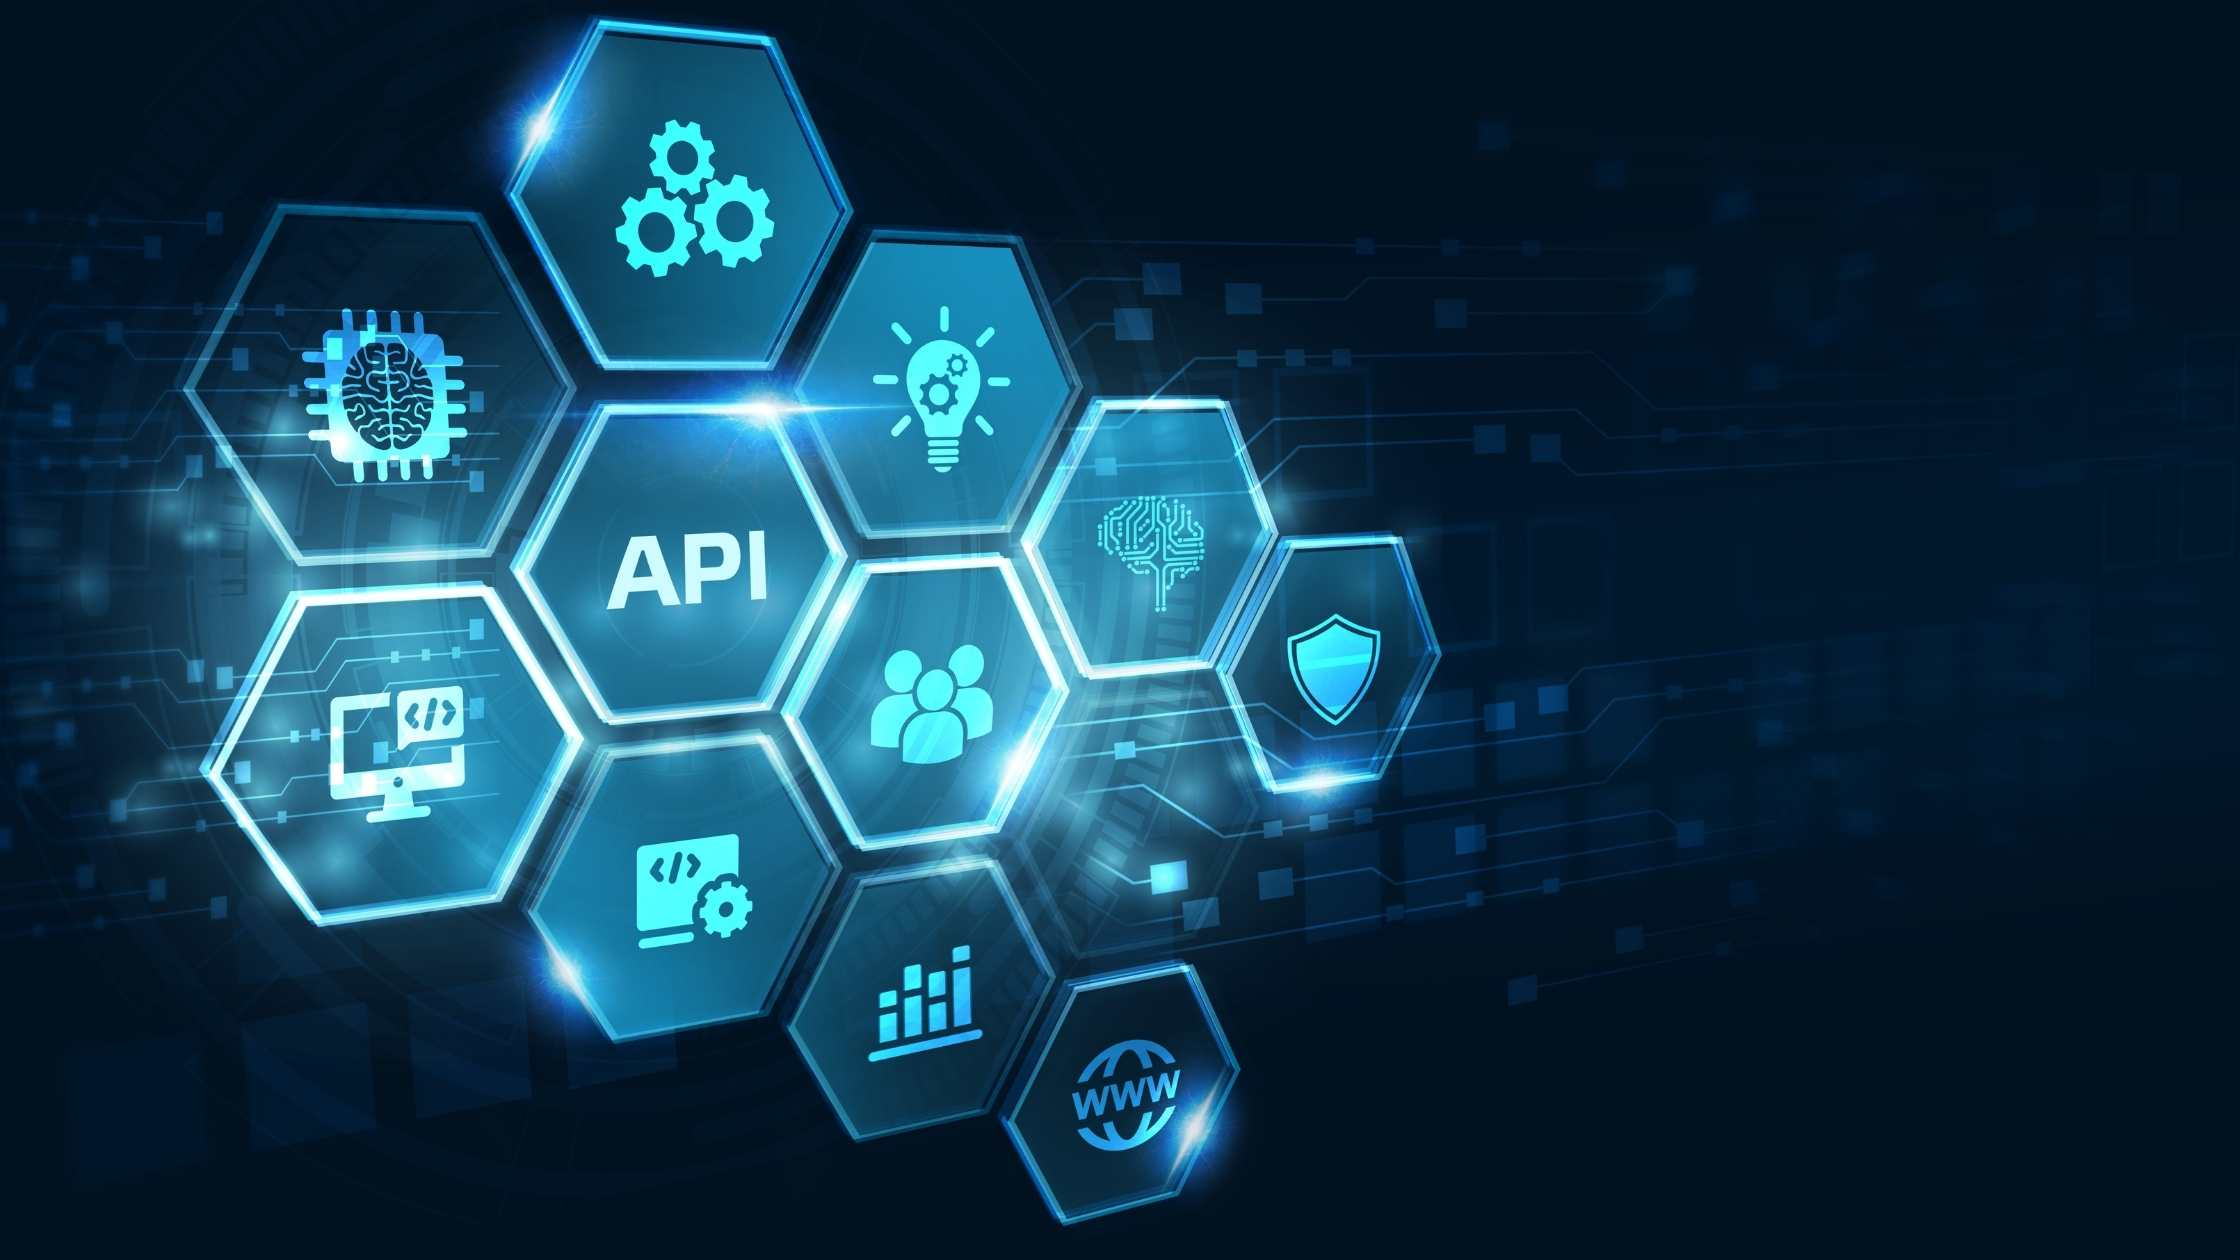 API Application Programming Interface concept, dark background with blue hexagons and technology icons